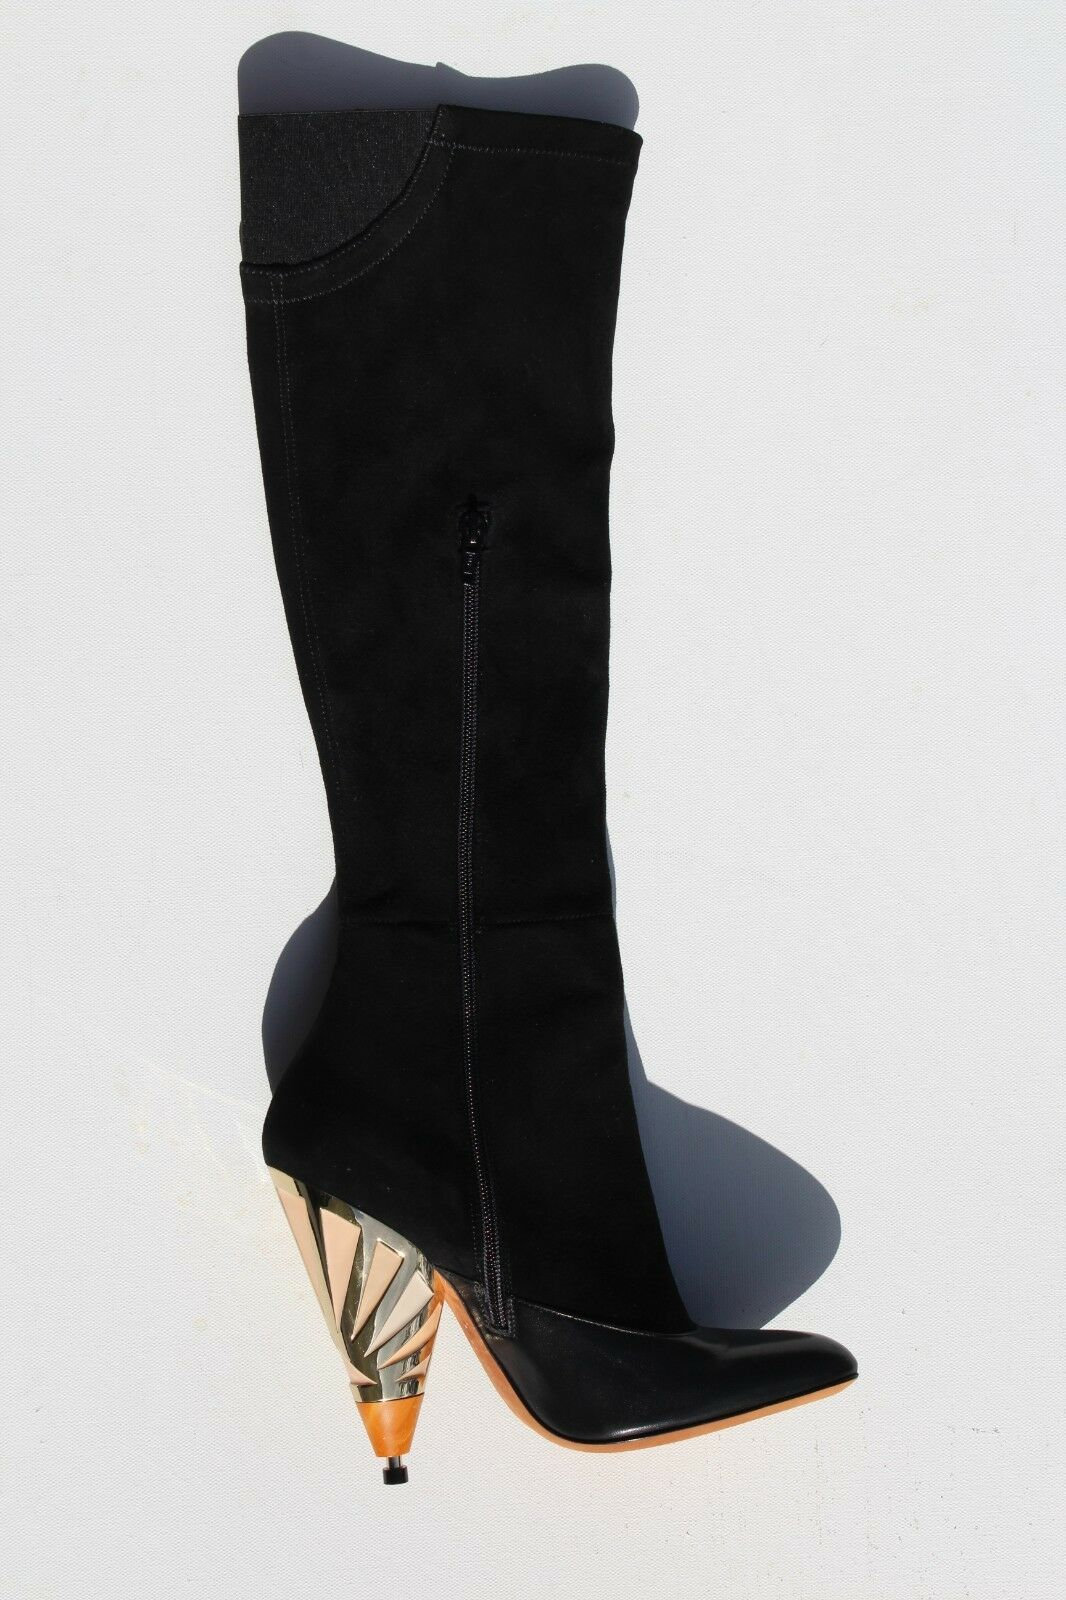 NEW AUTHENTIC GIVENCHY WOMENS HEELS LEATHER SUEDE BLACK BOOTS SIZE 37